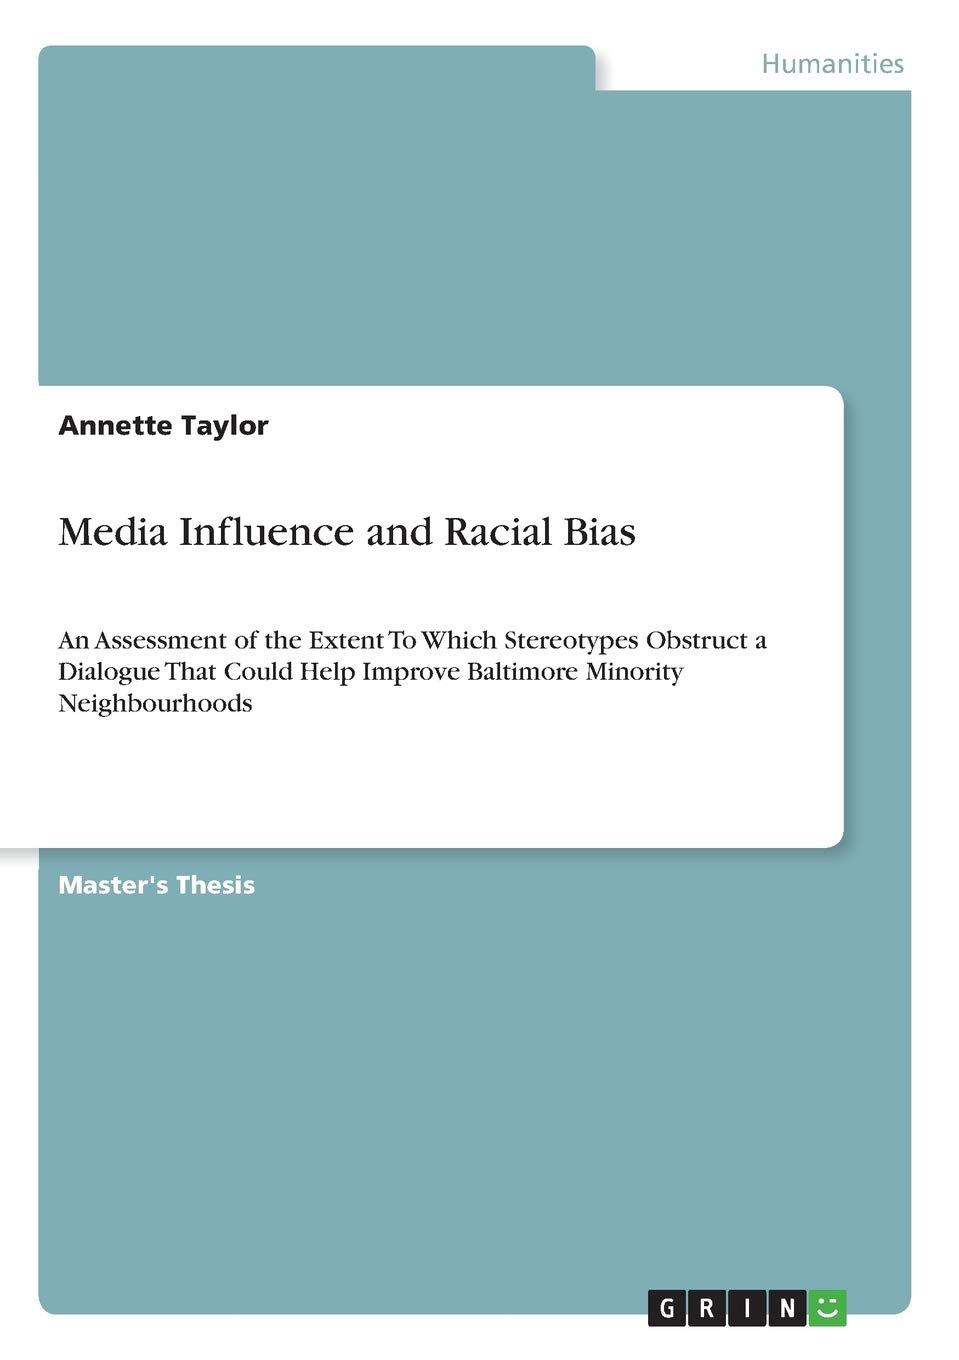 Media Influence And Racial Bias An Assessment Of The Extent To Which Stereotypes Obstruct A Dialogue That Could Help Improve Baltimore Minority Neighbourhoods Taylor Annette 9783668413627 Amazon Com Books The journey in understanding assessment bias something to think about: amazon com